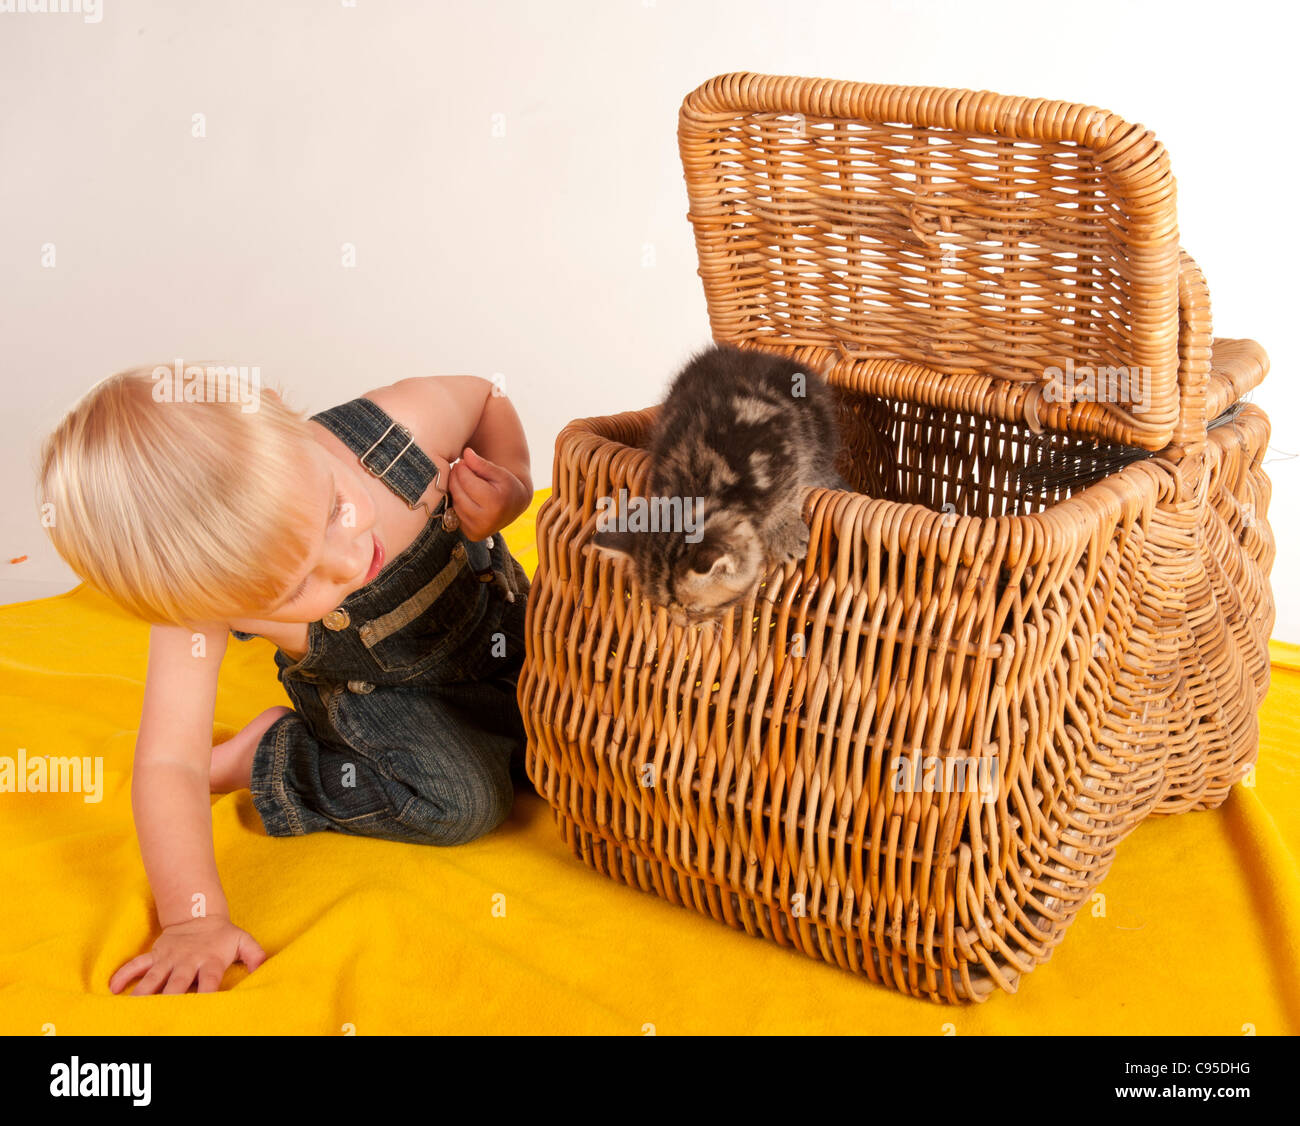 little boy curiously playing with kittens in picnic basket - Stock Image